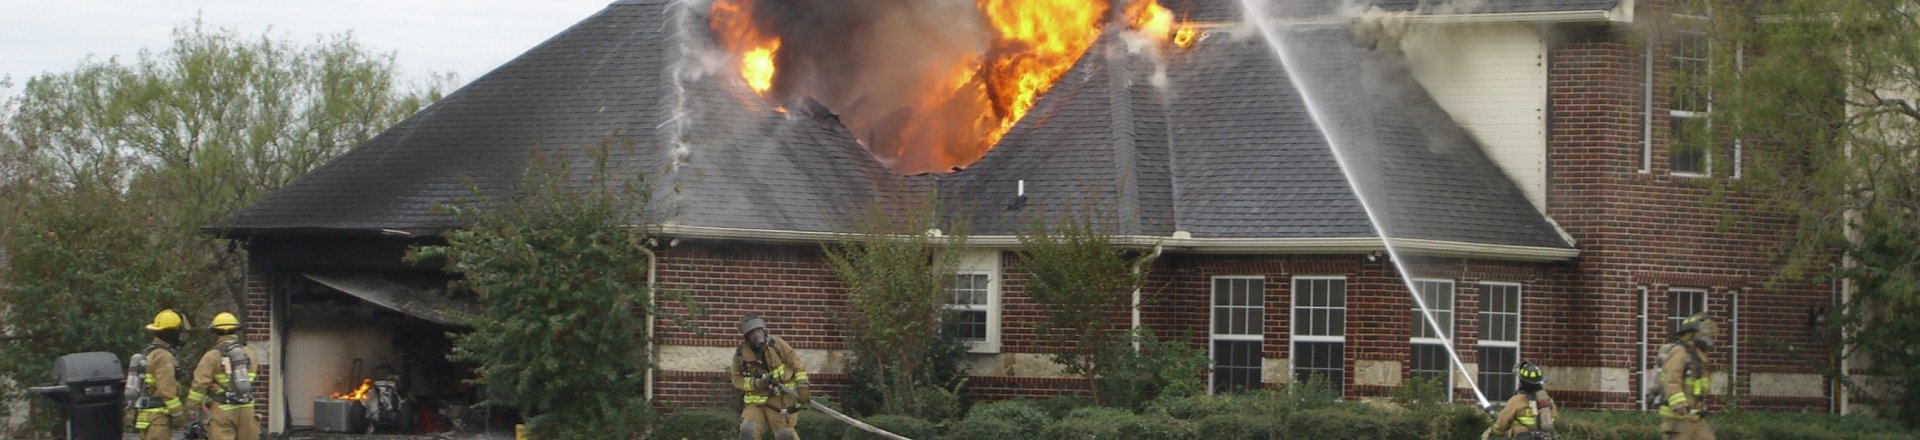 House On Fire, Fire Damage Claims Dispute Lawyer